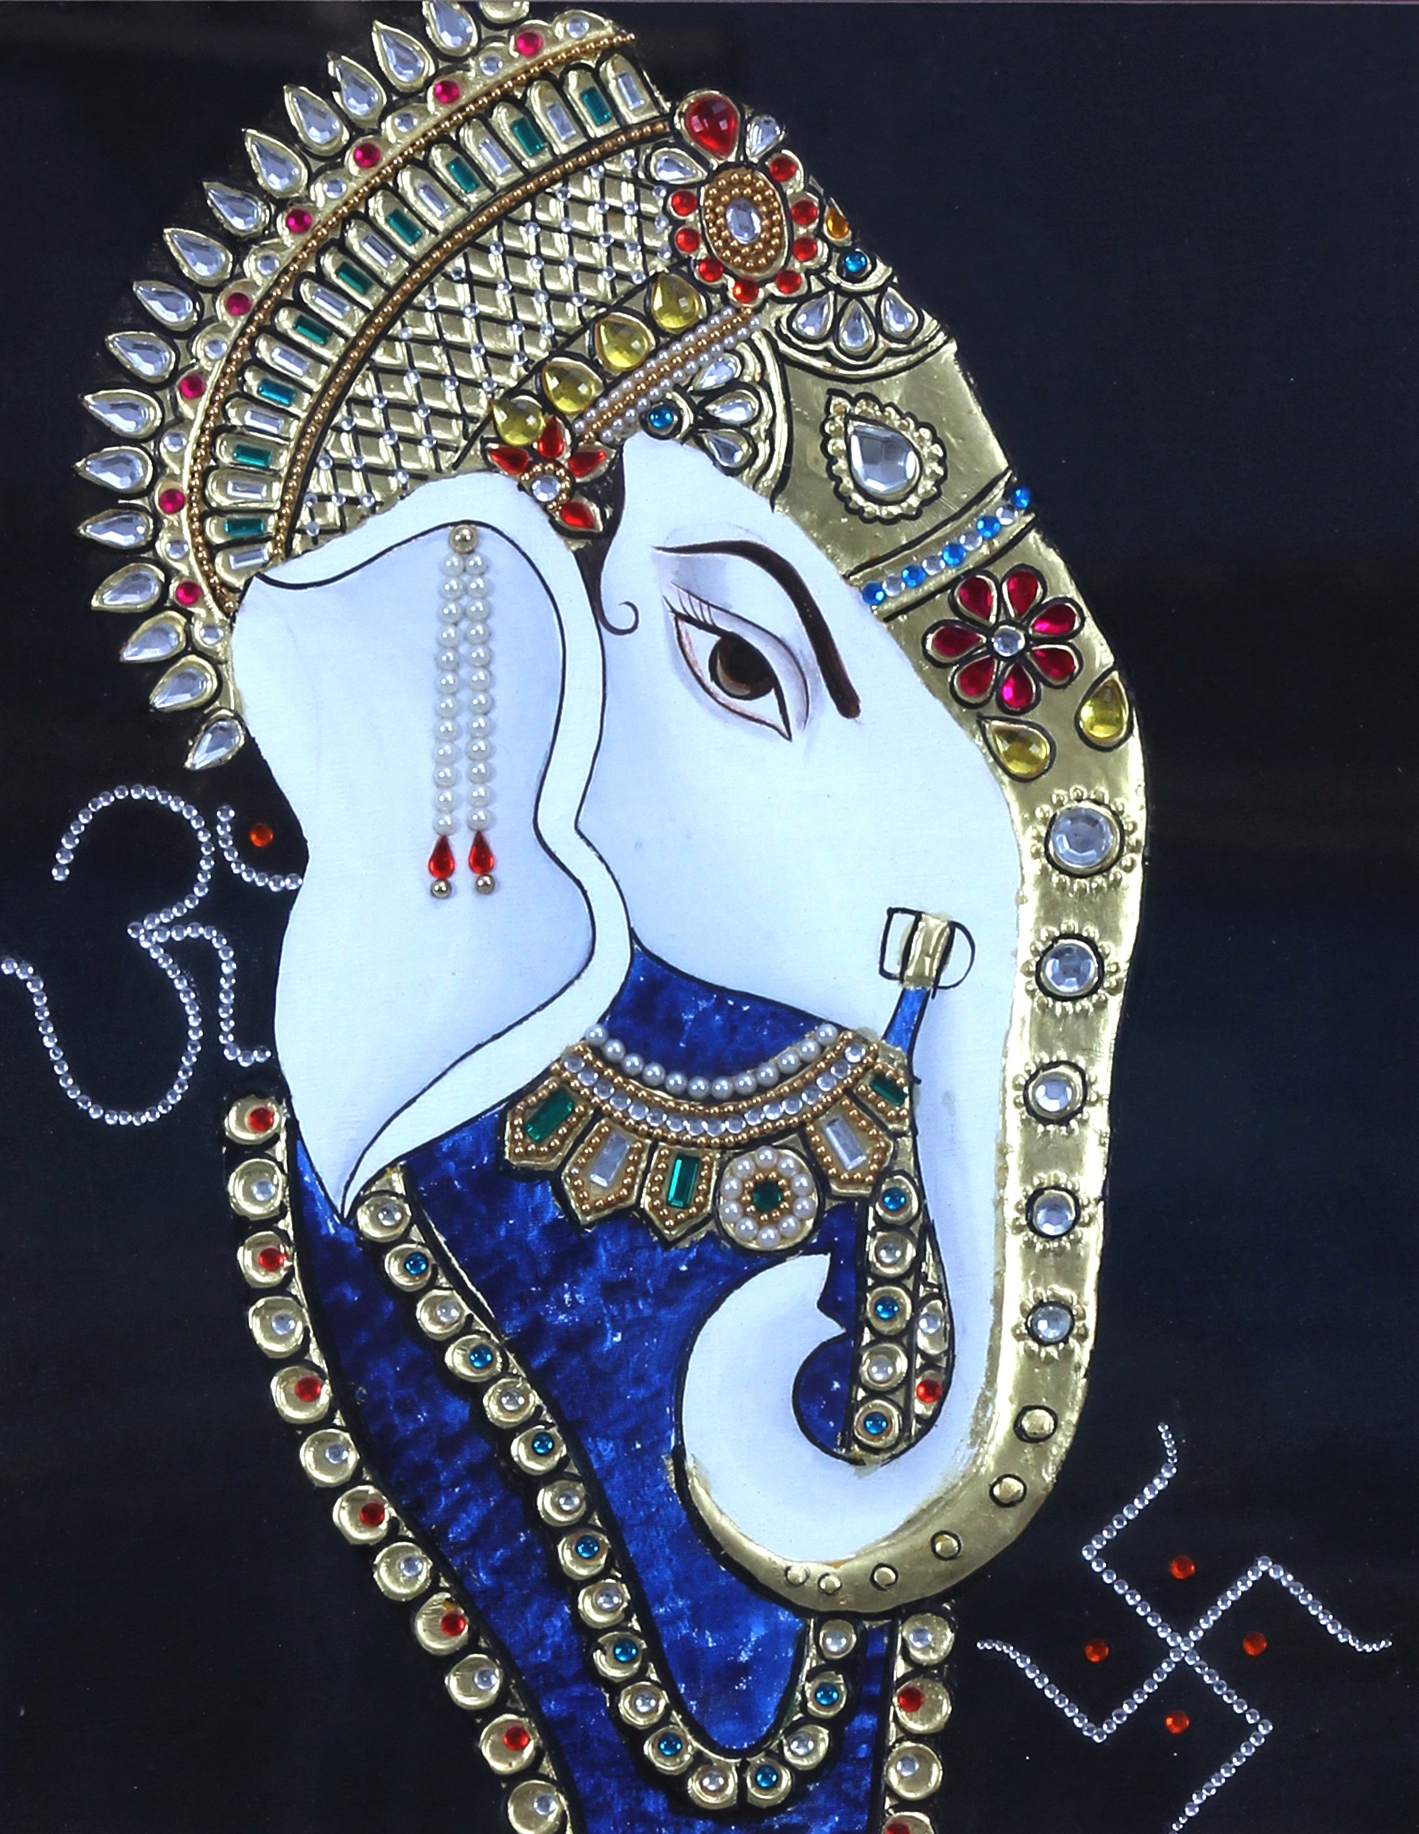 Tanjore Painting of Lord Ganesha Face